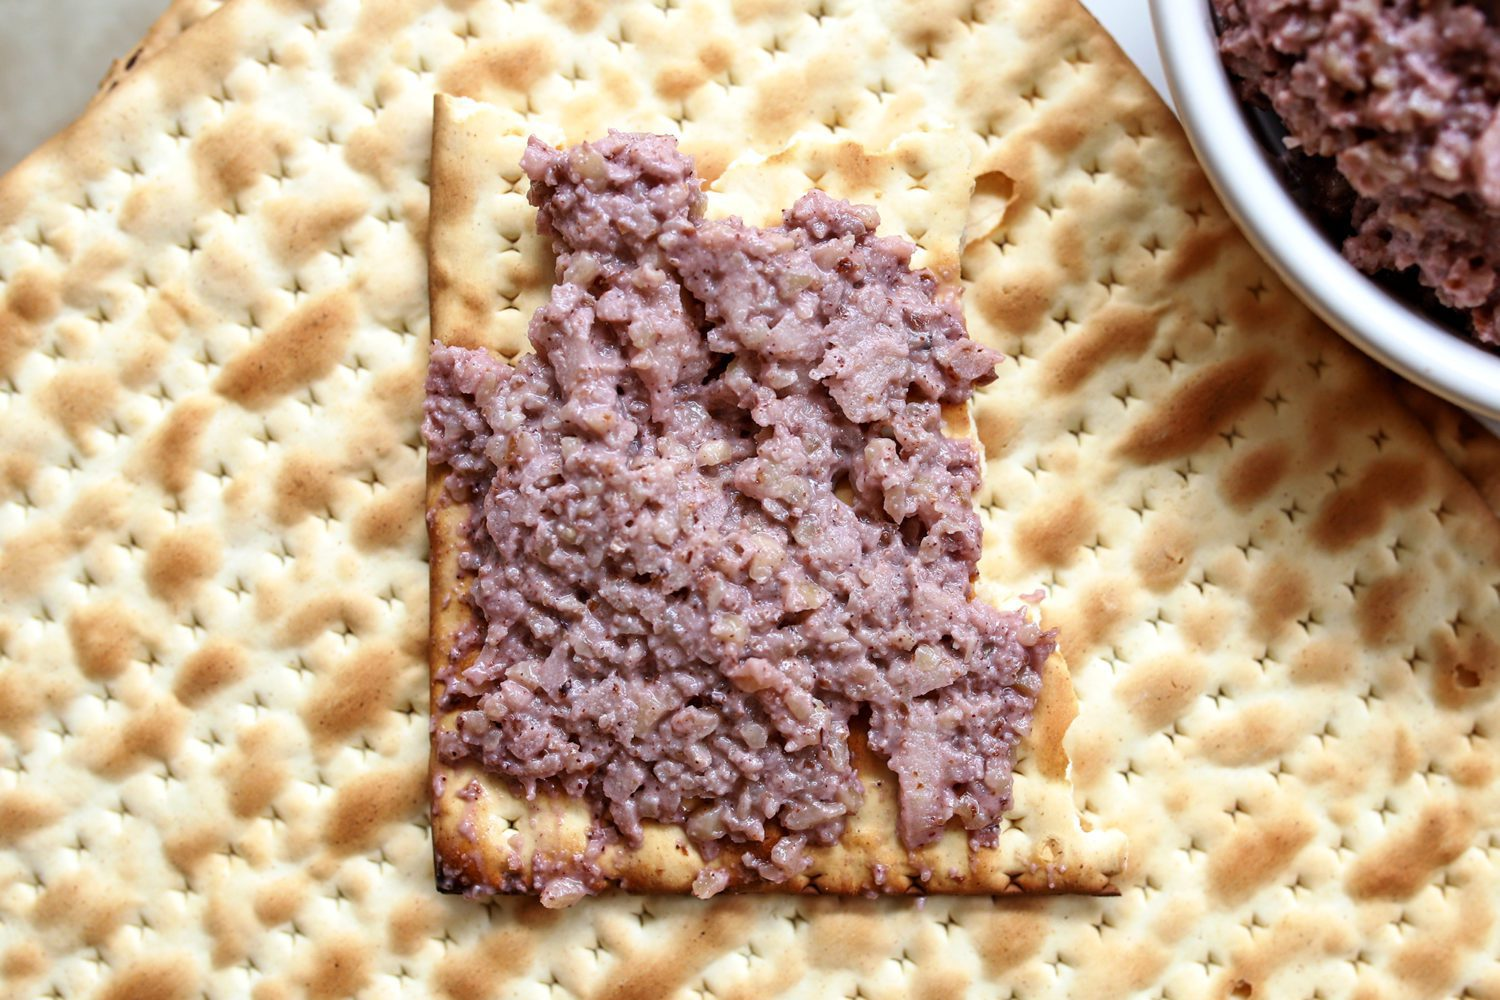 piece of matzoh with charoset spread on top